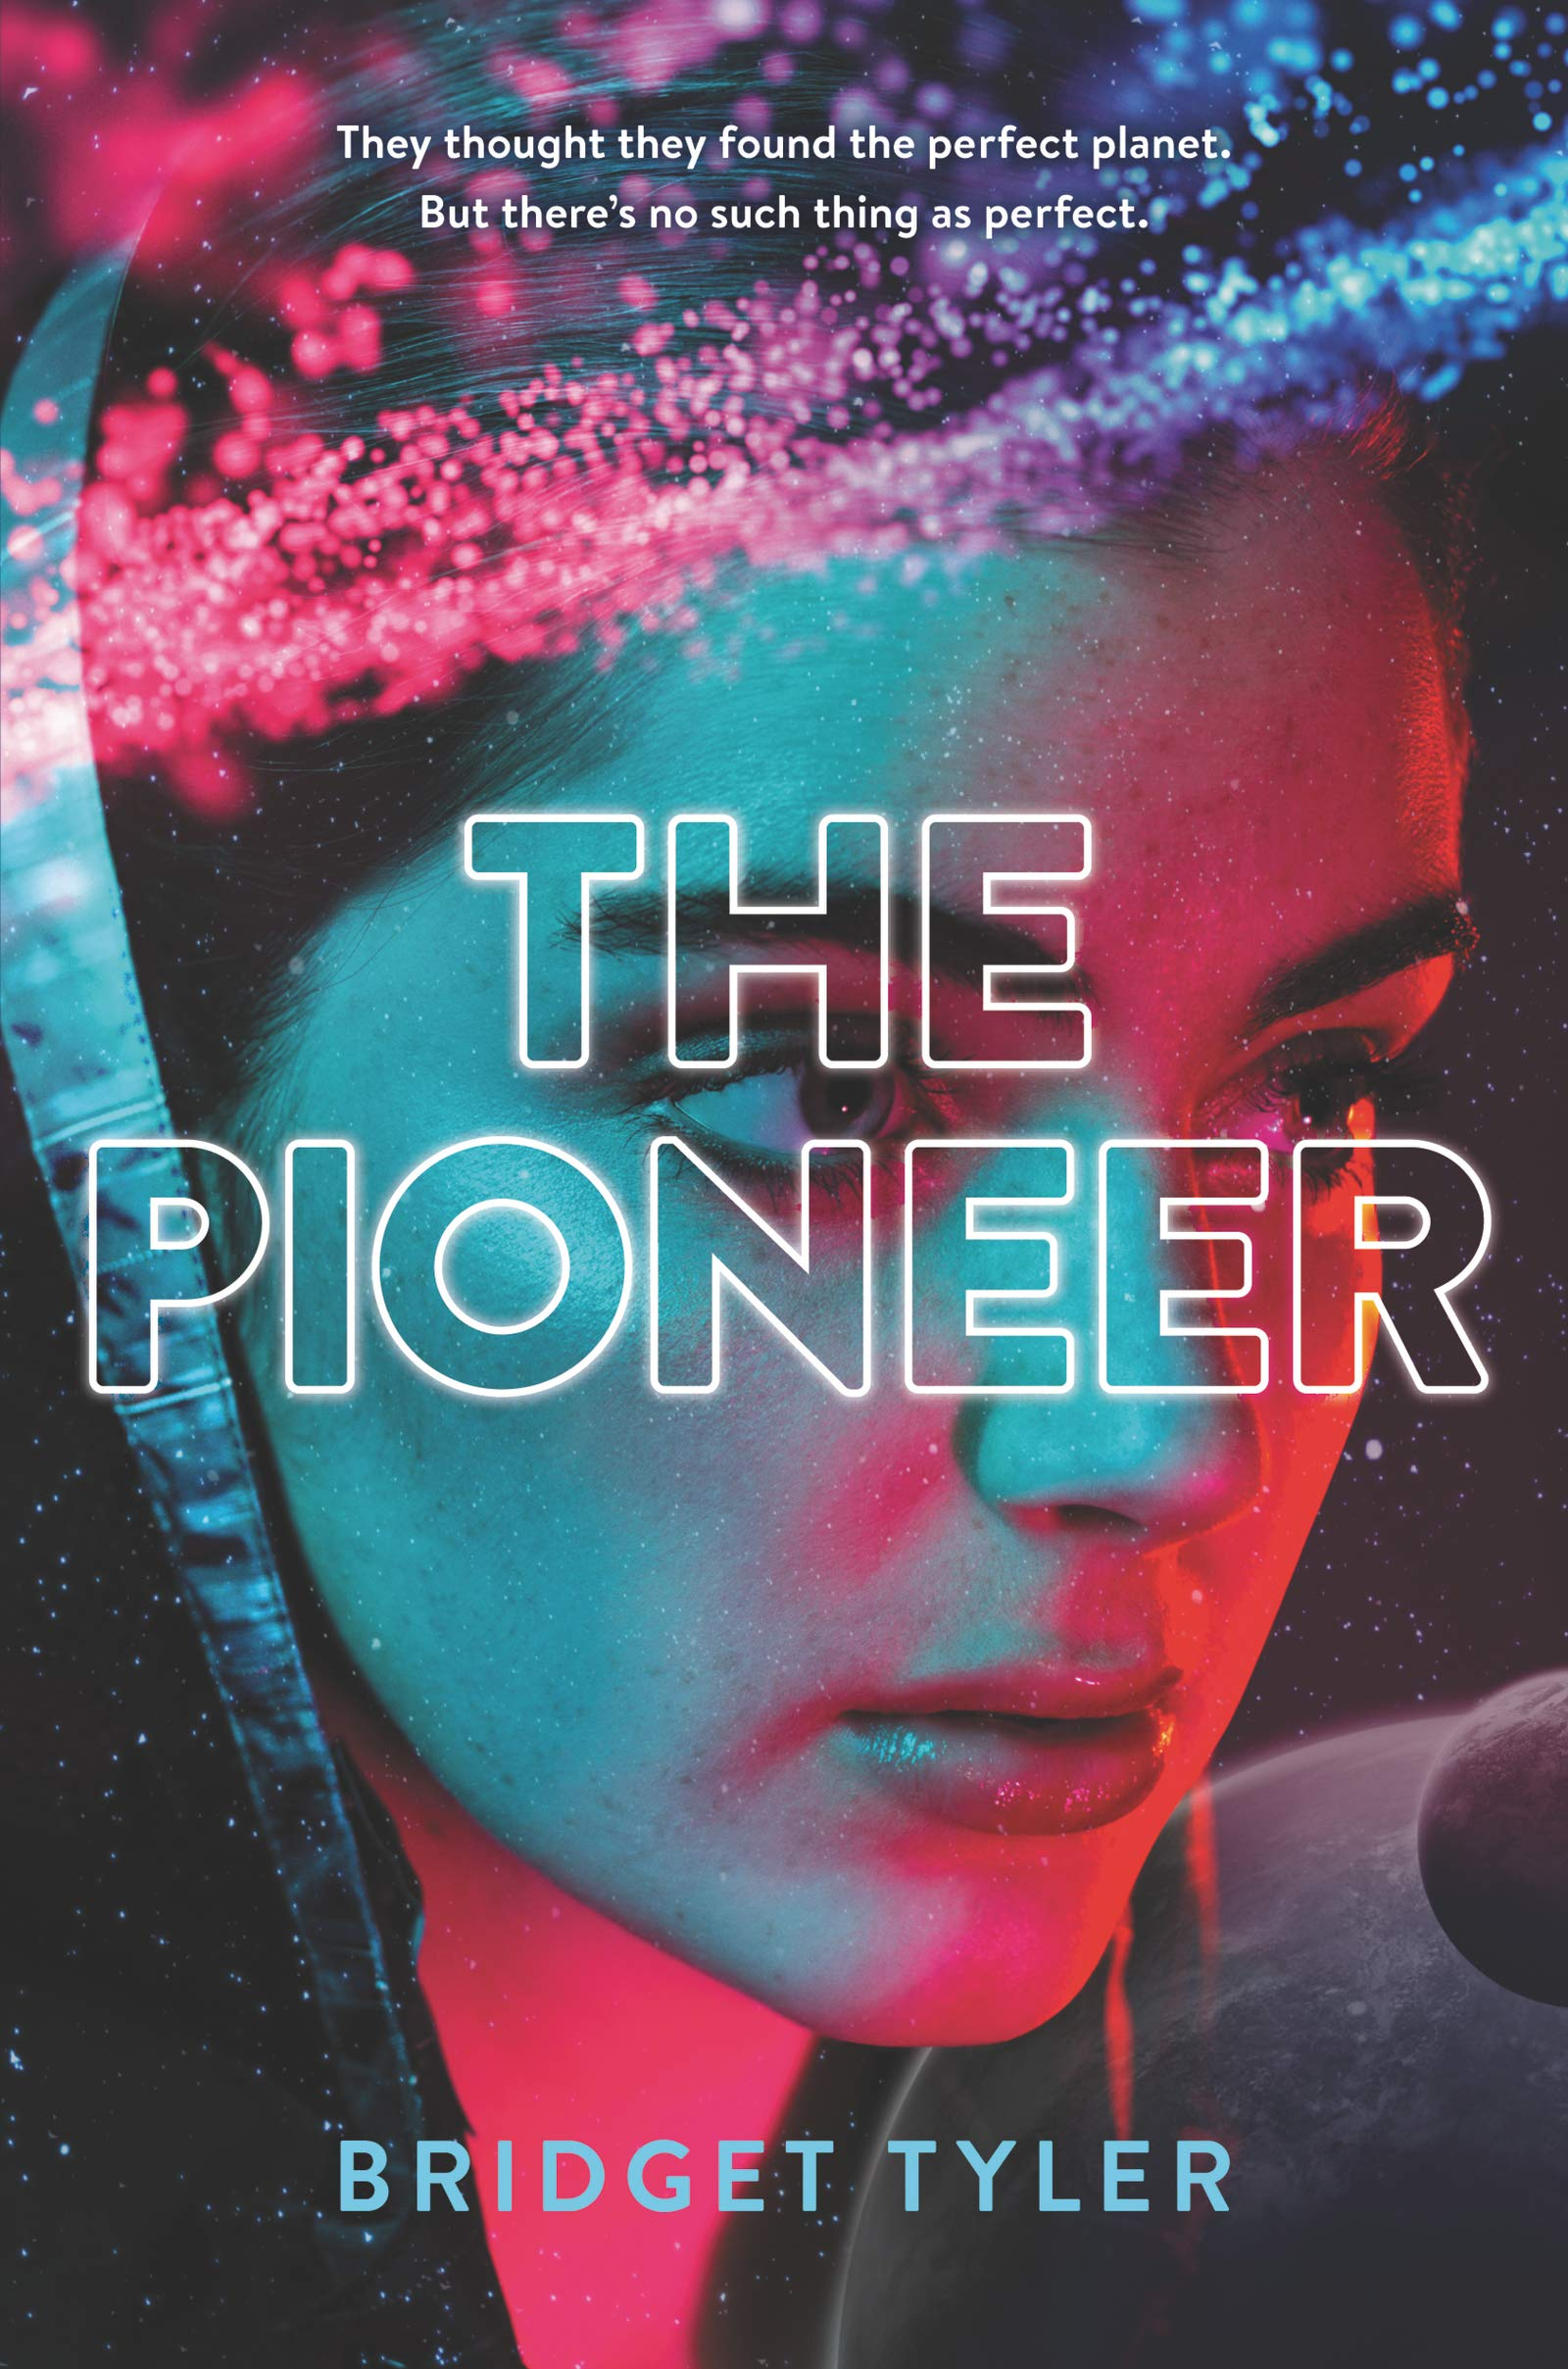 Amazon.com: The Pioneer (9780062658067): Tyler, Bridget: Books